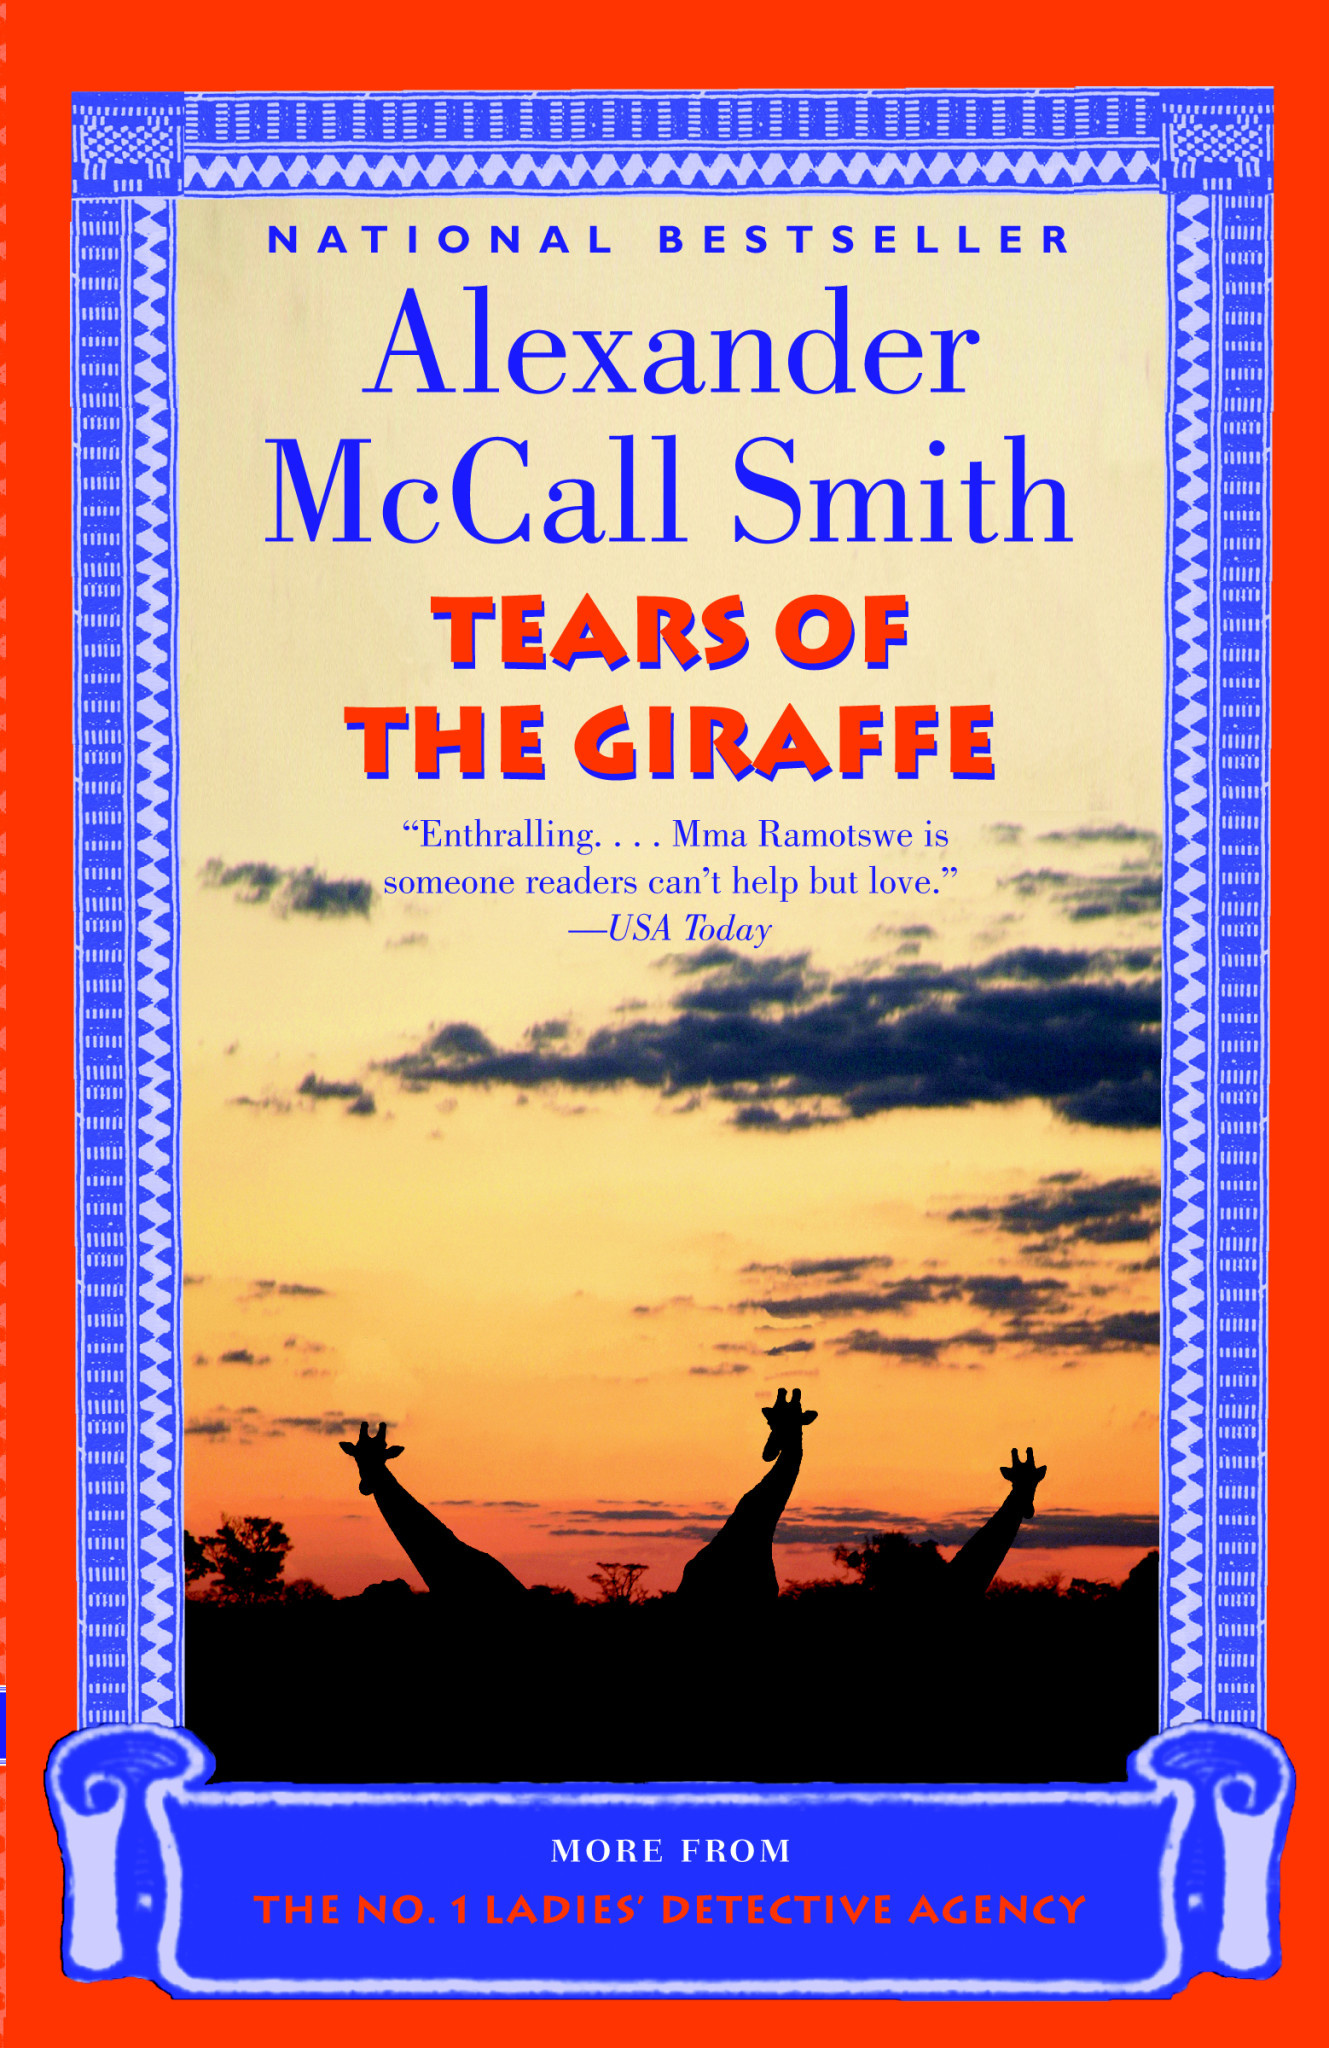 Tears of the Giraffe (The No. 1 Ladies Detective Agency series)